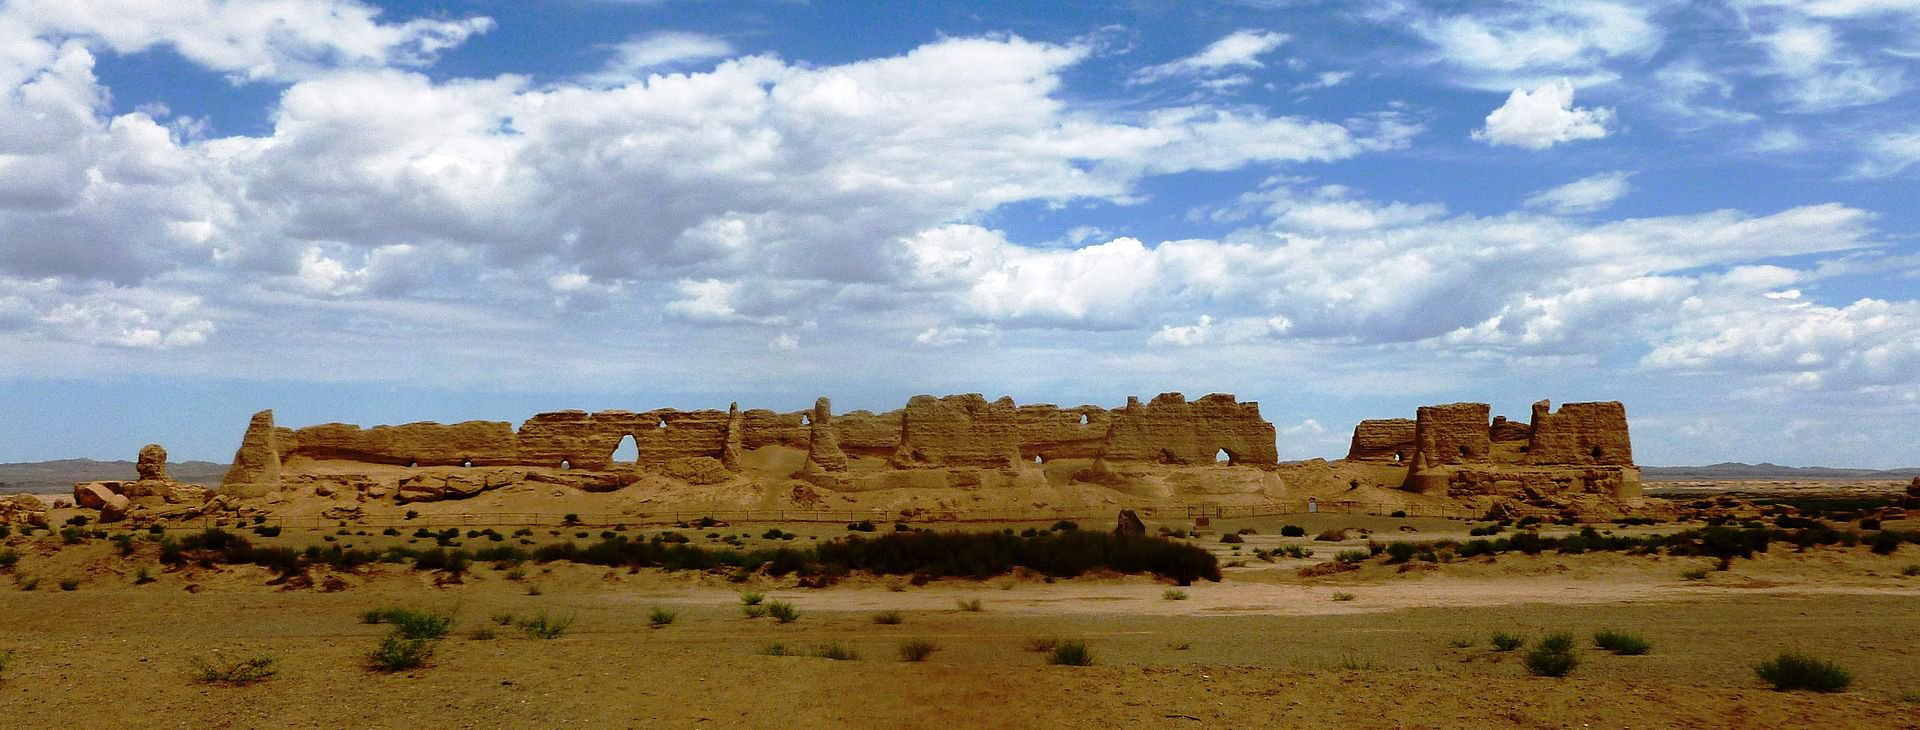 Han_Dynasty_Granary_west_of_Dunhuang.jpg